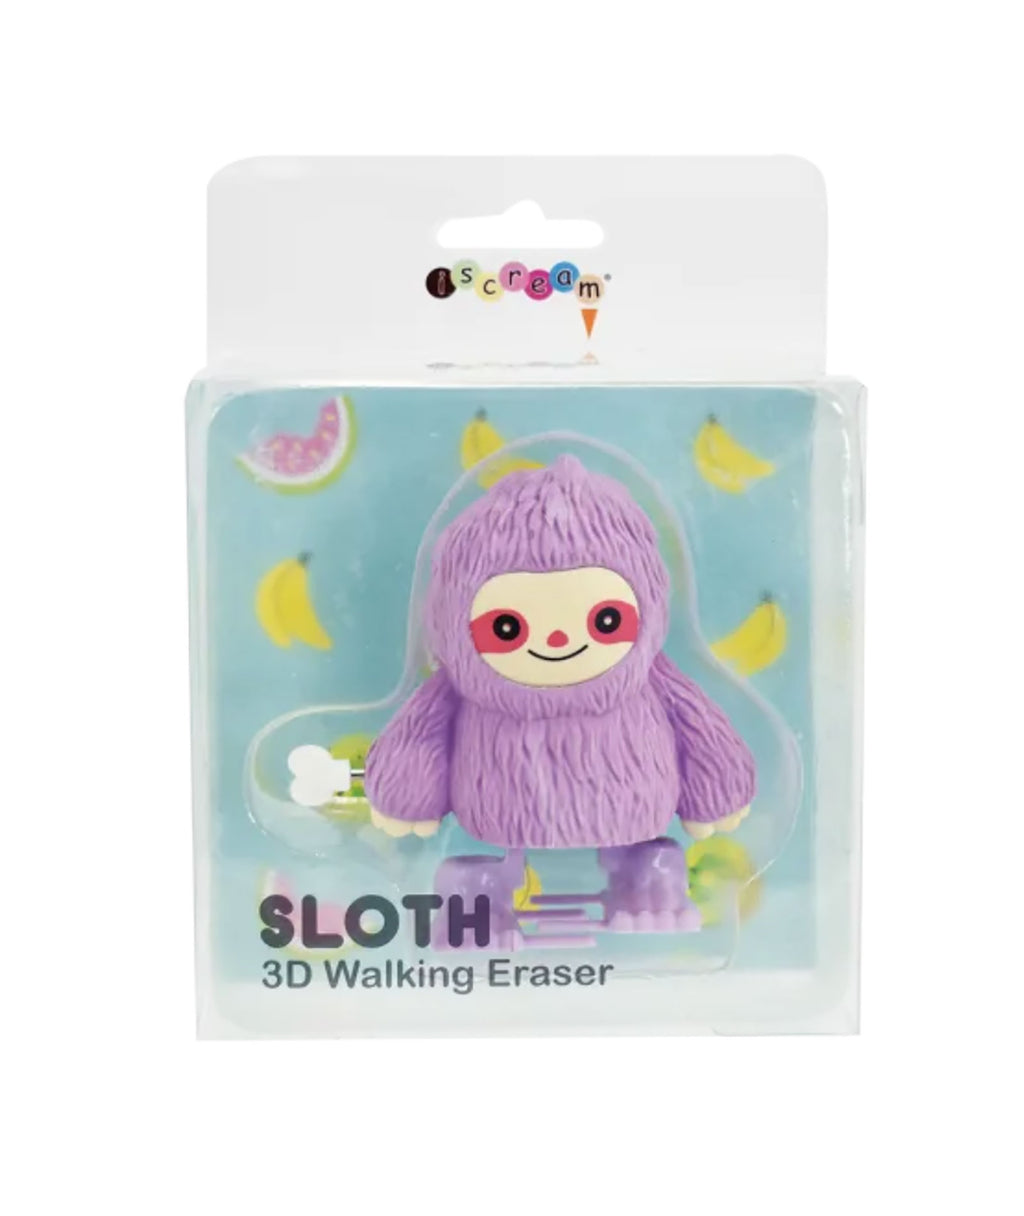 iScream Sloth Walking Eraser